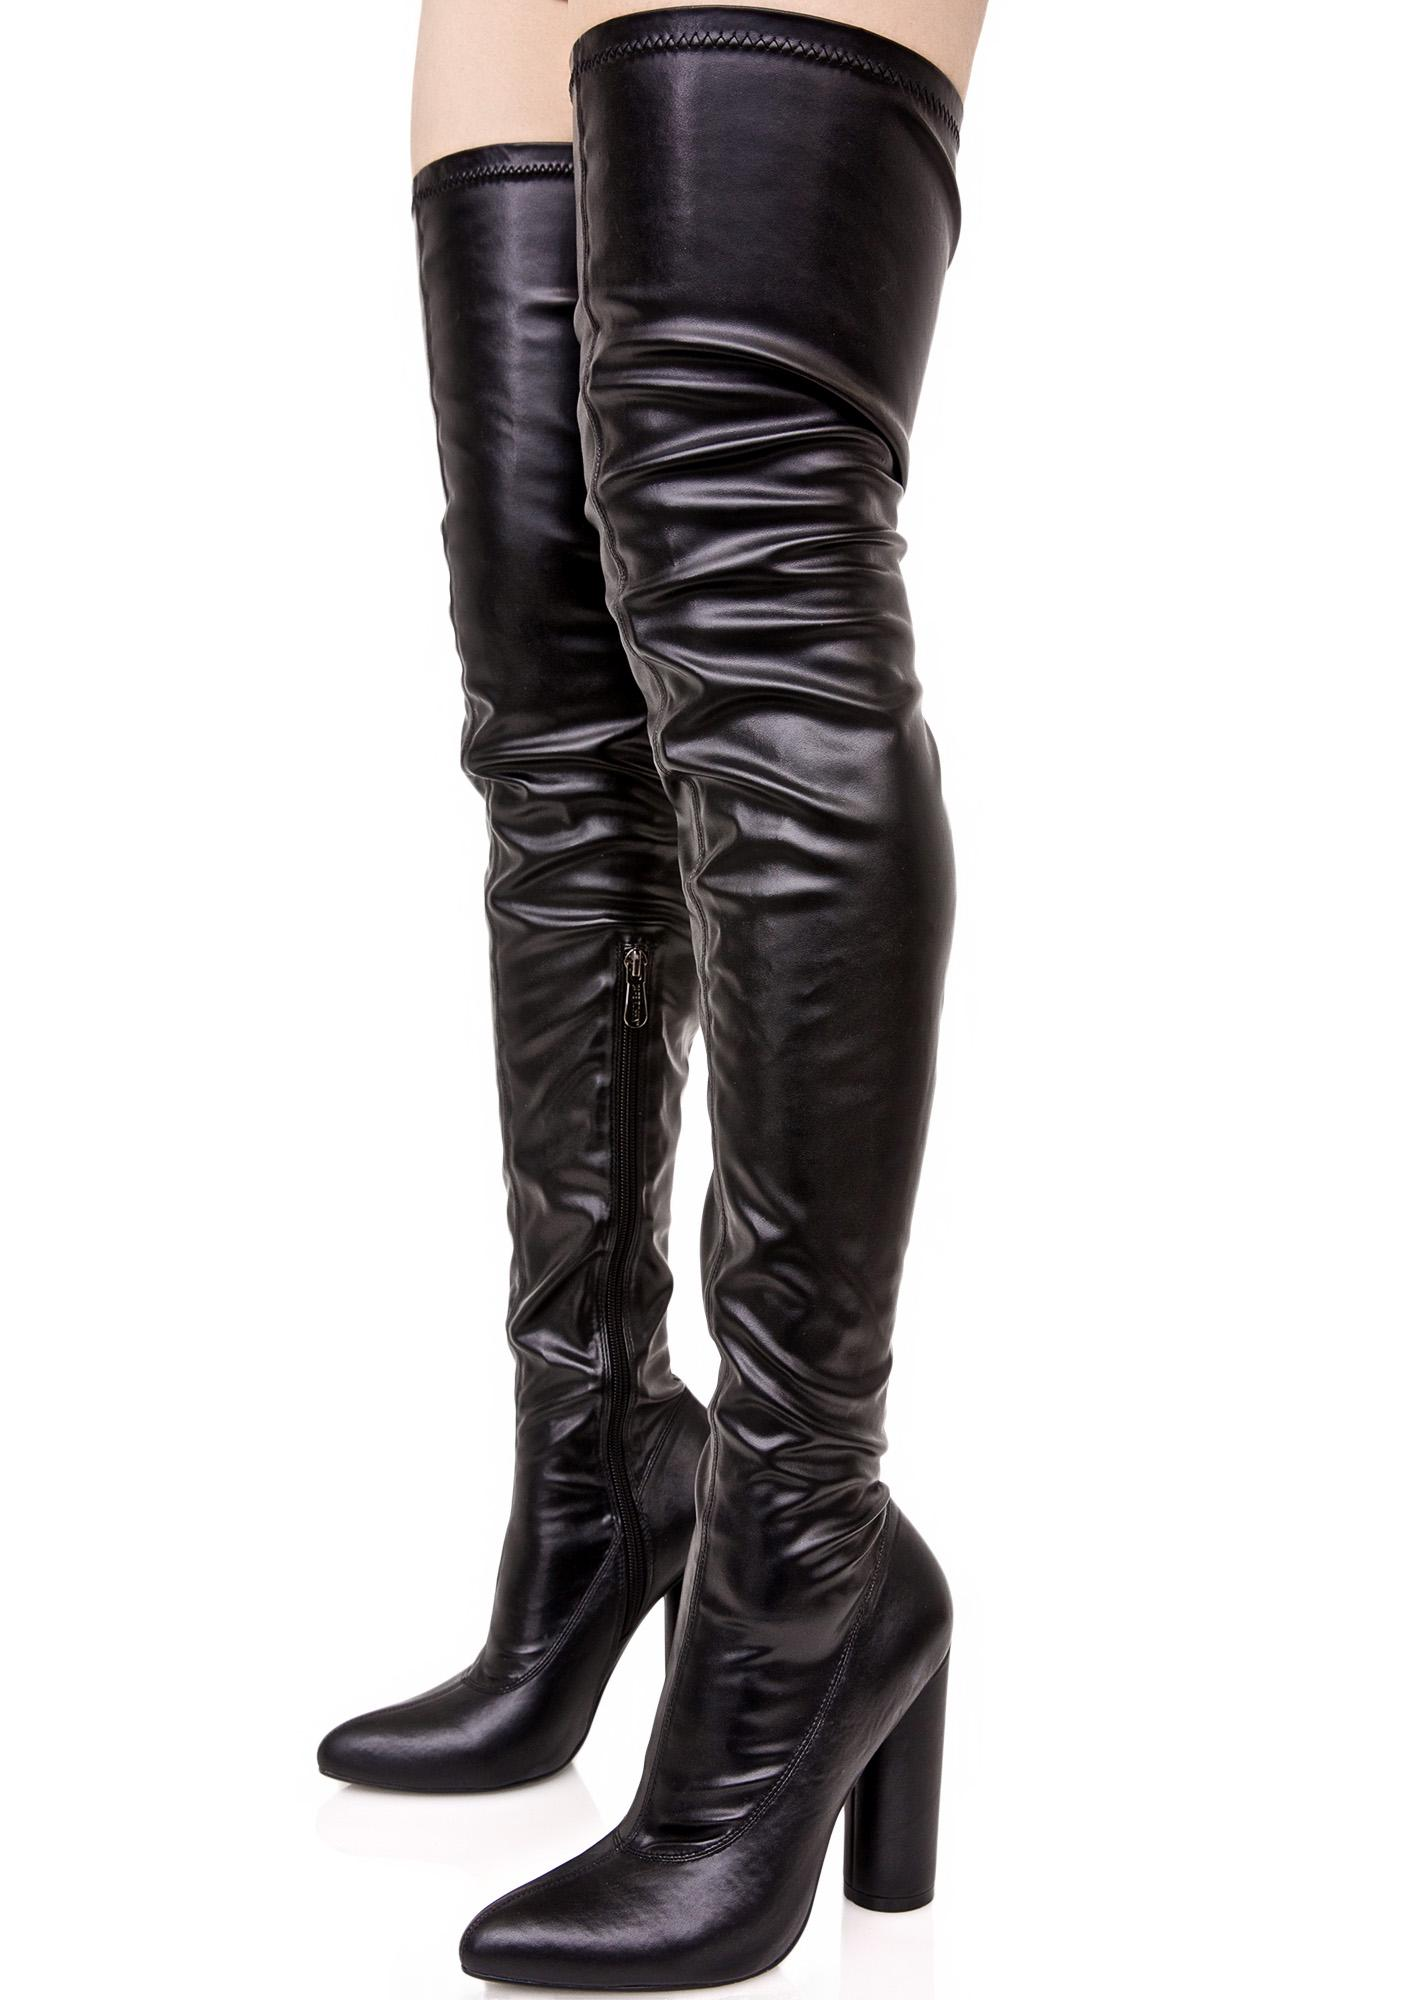 Fast Lane Thigh High Boot